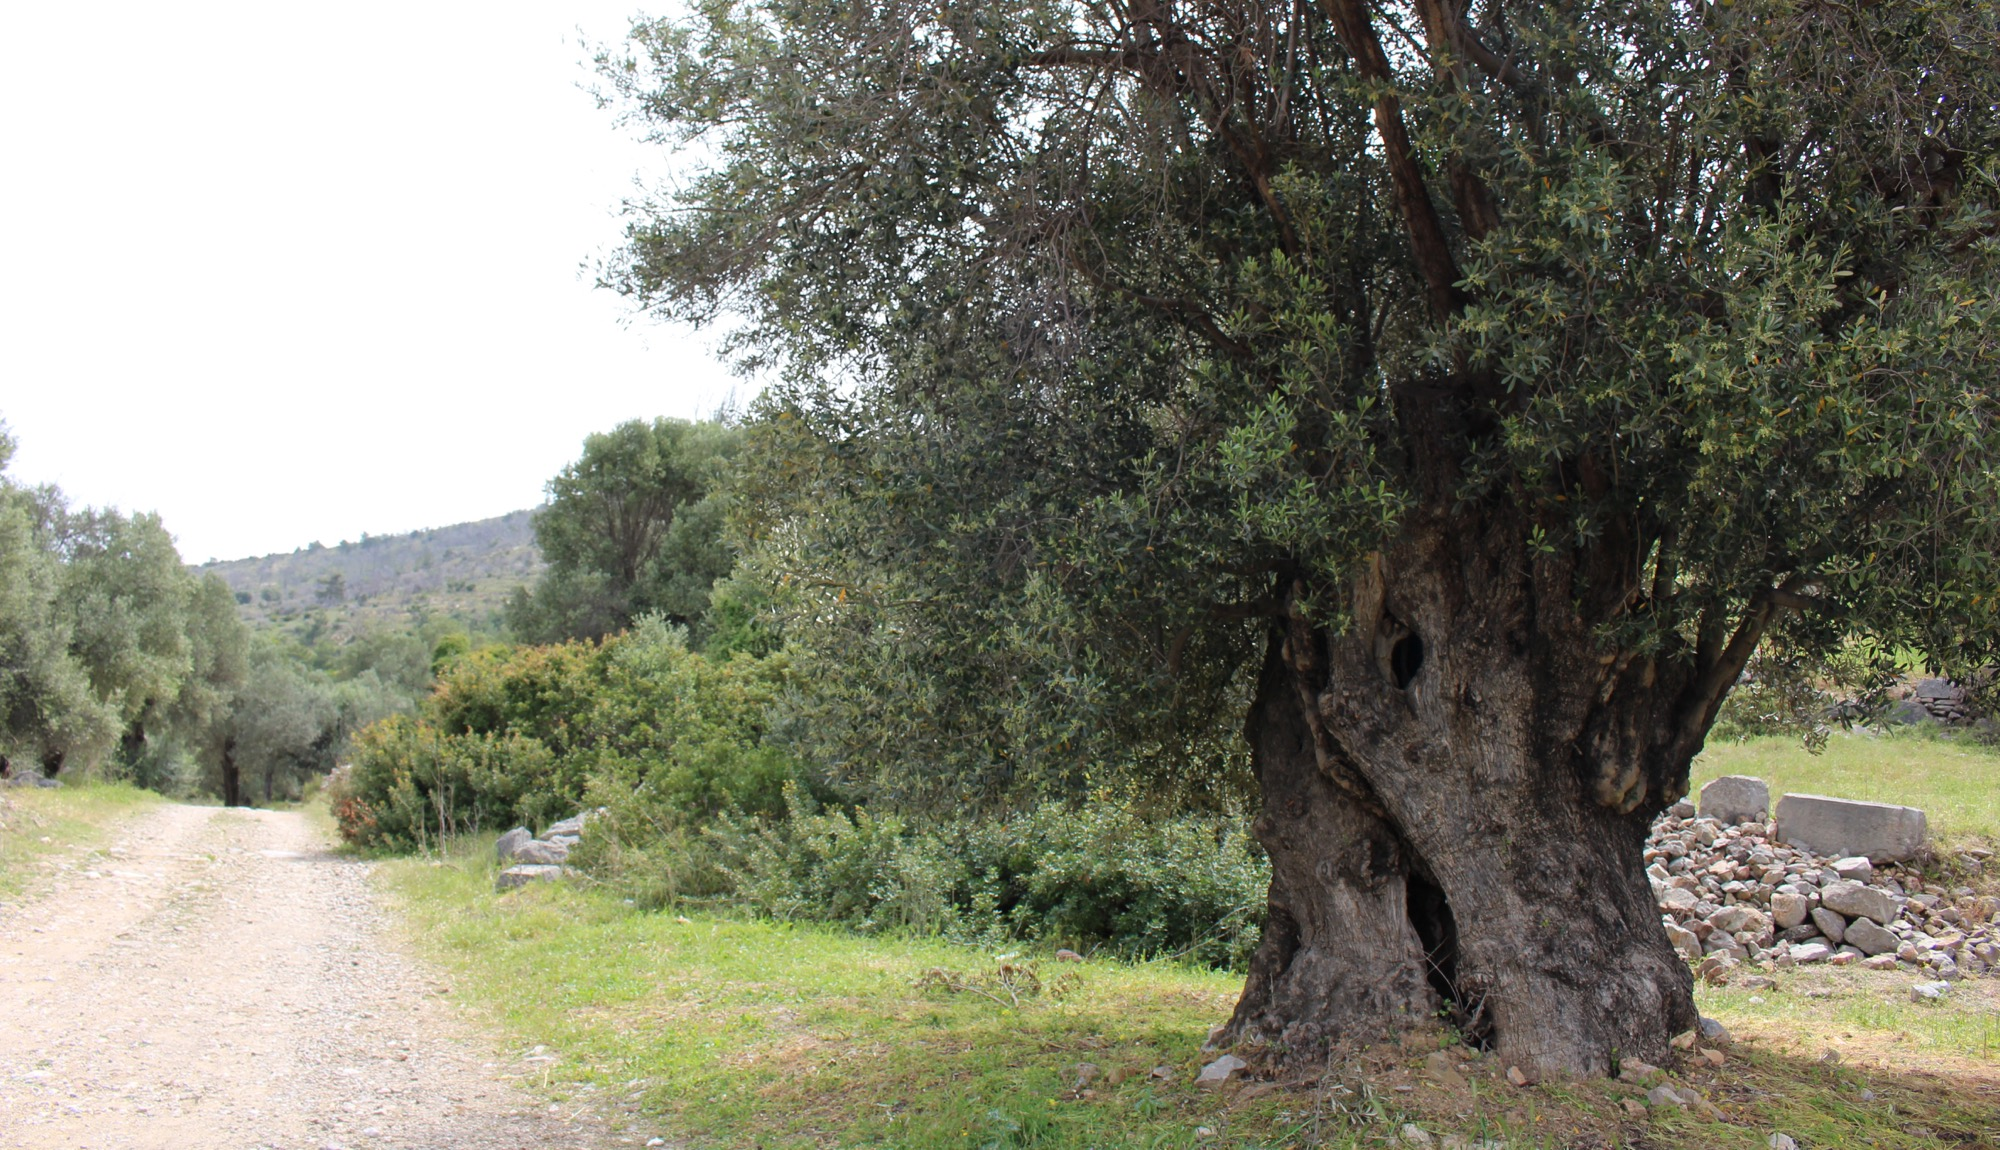 An ancient olive tree beside the road